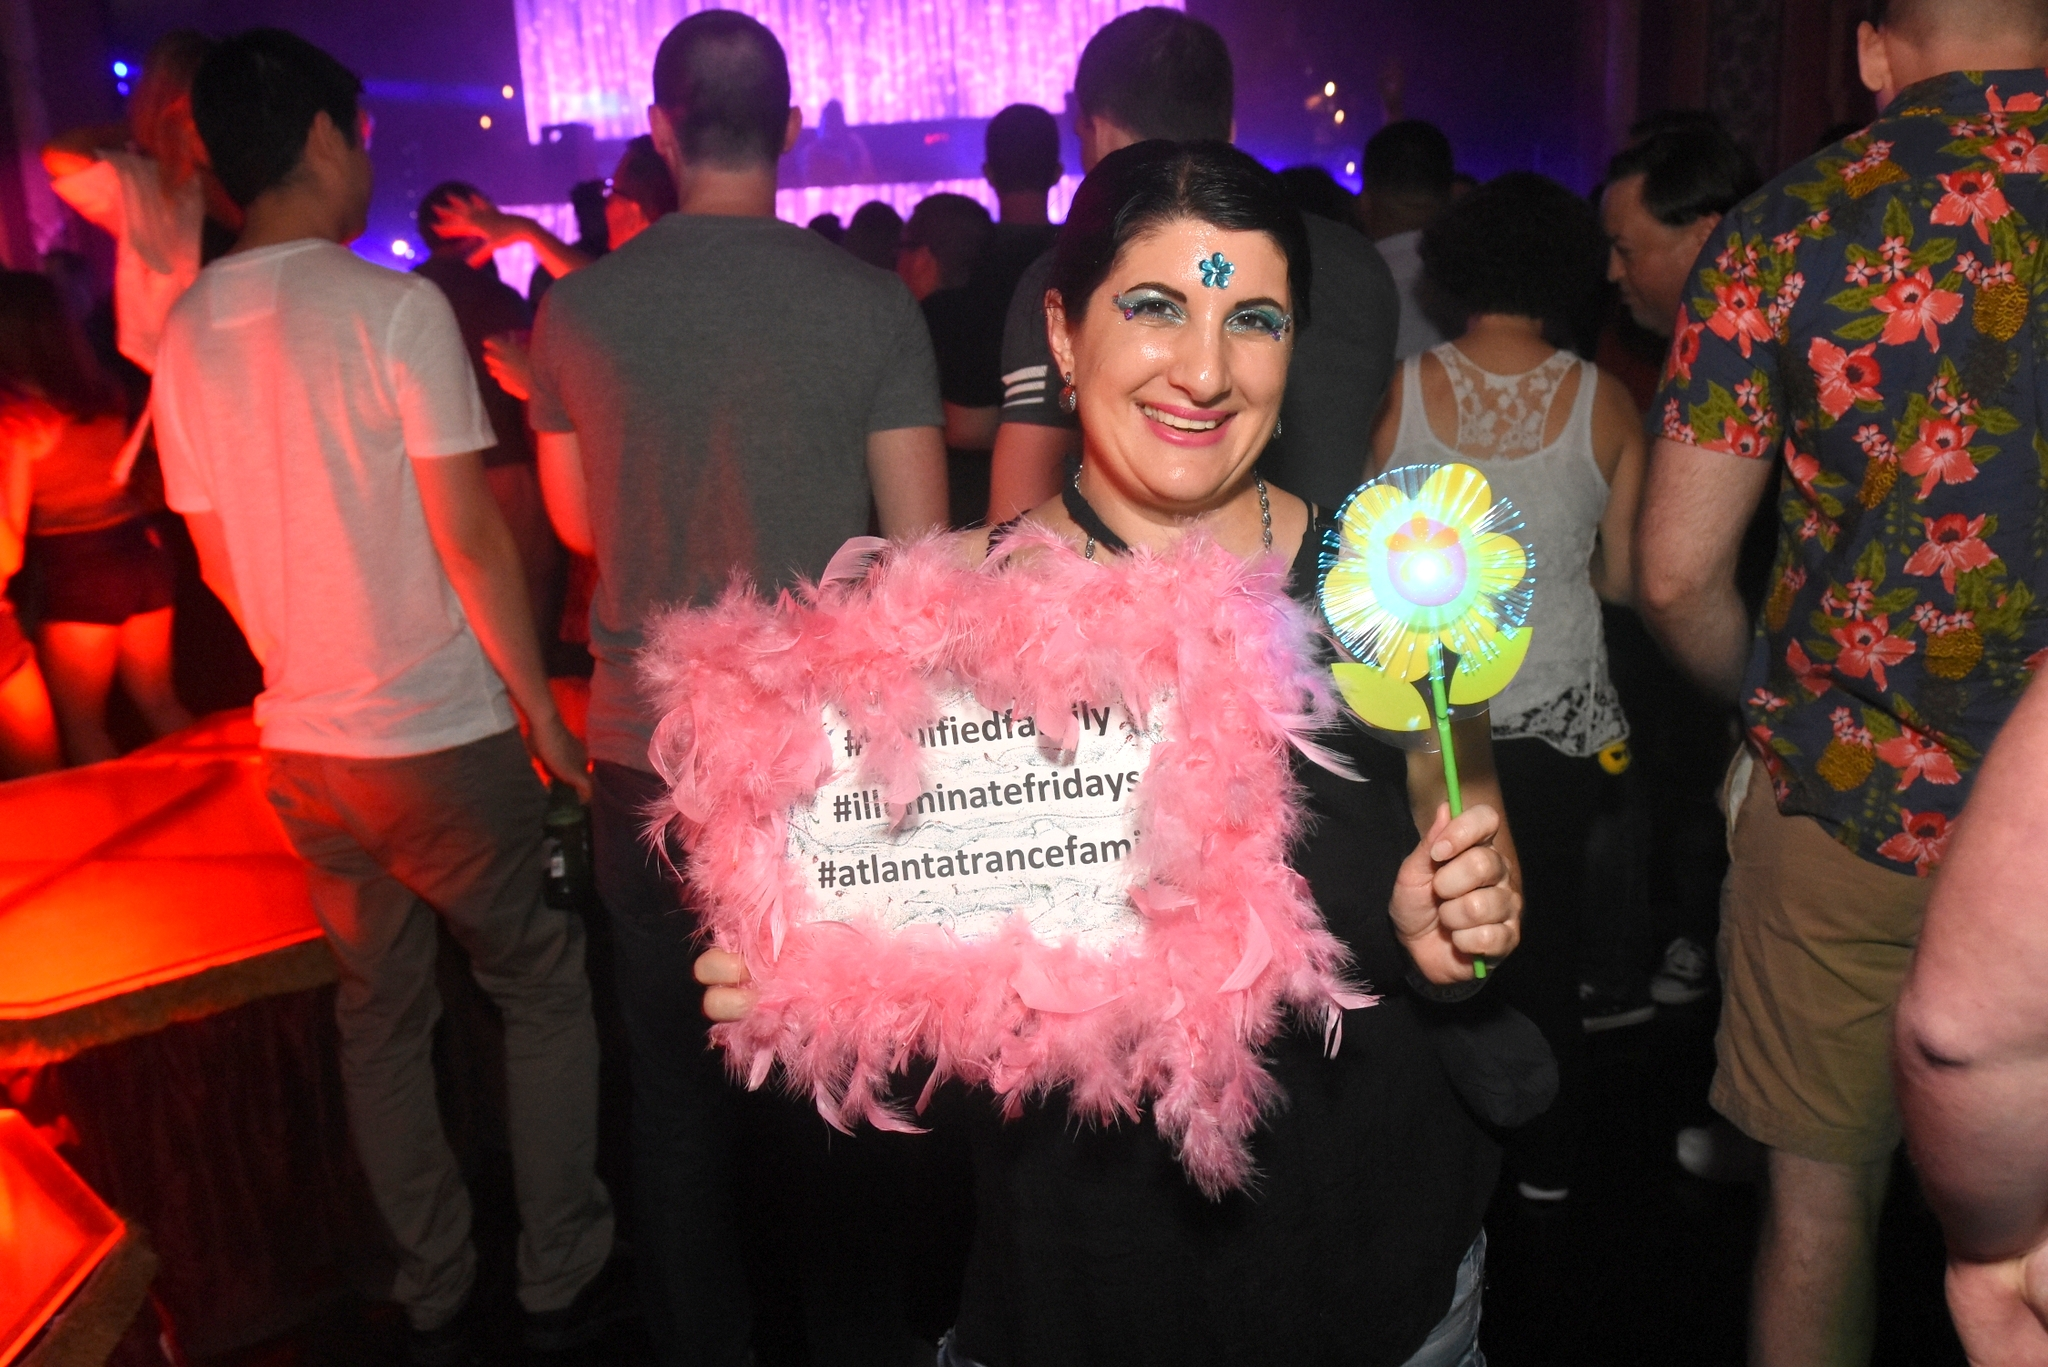 Ferry corsten presents blueprint opera nightclub event review photo credit chucky kahng malvernweather Choice Image